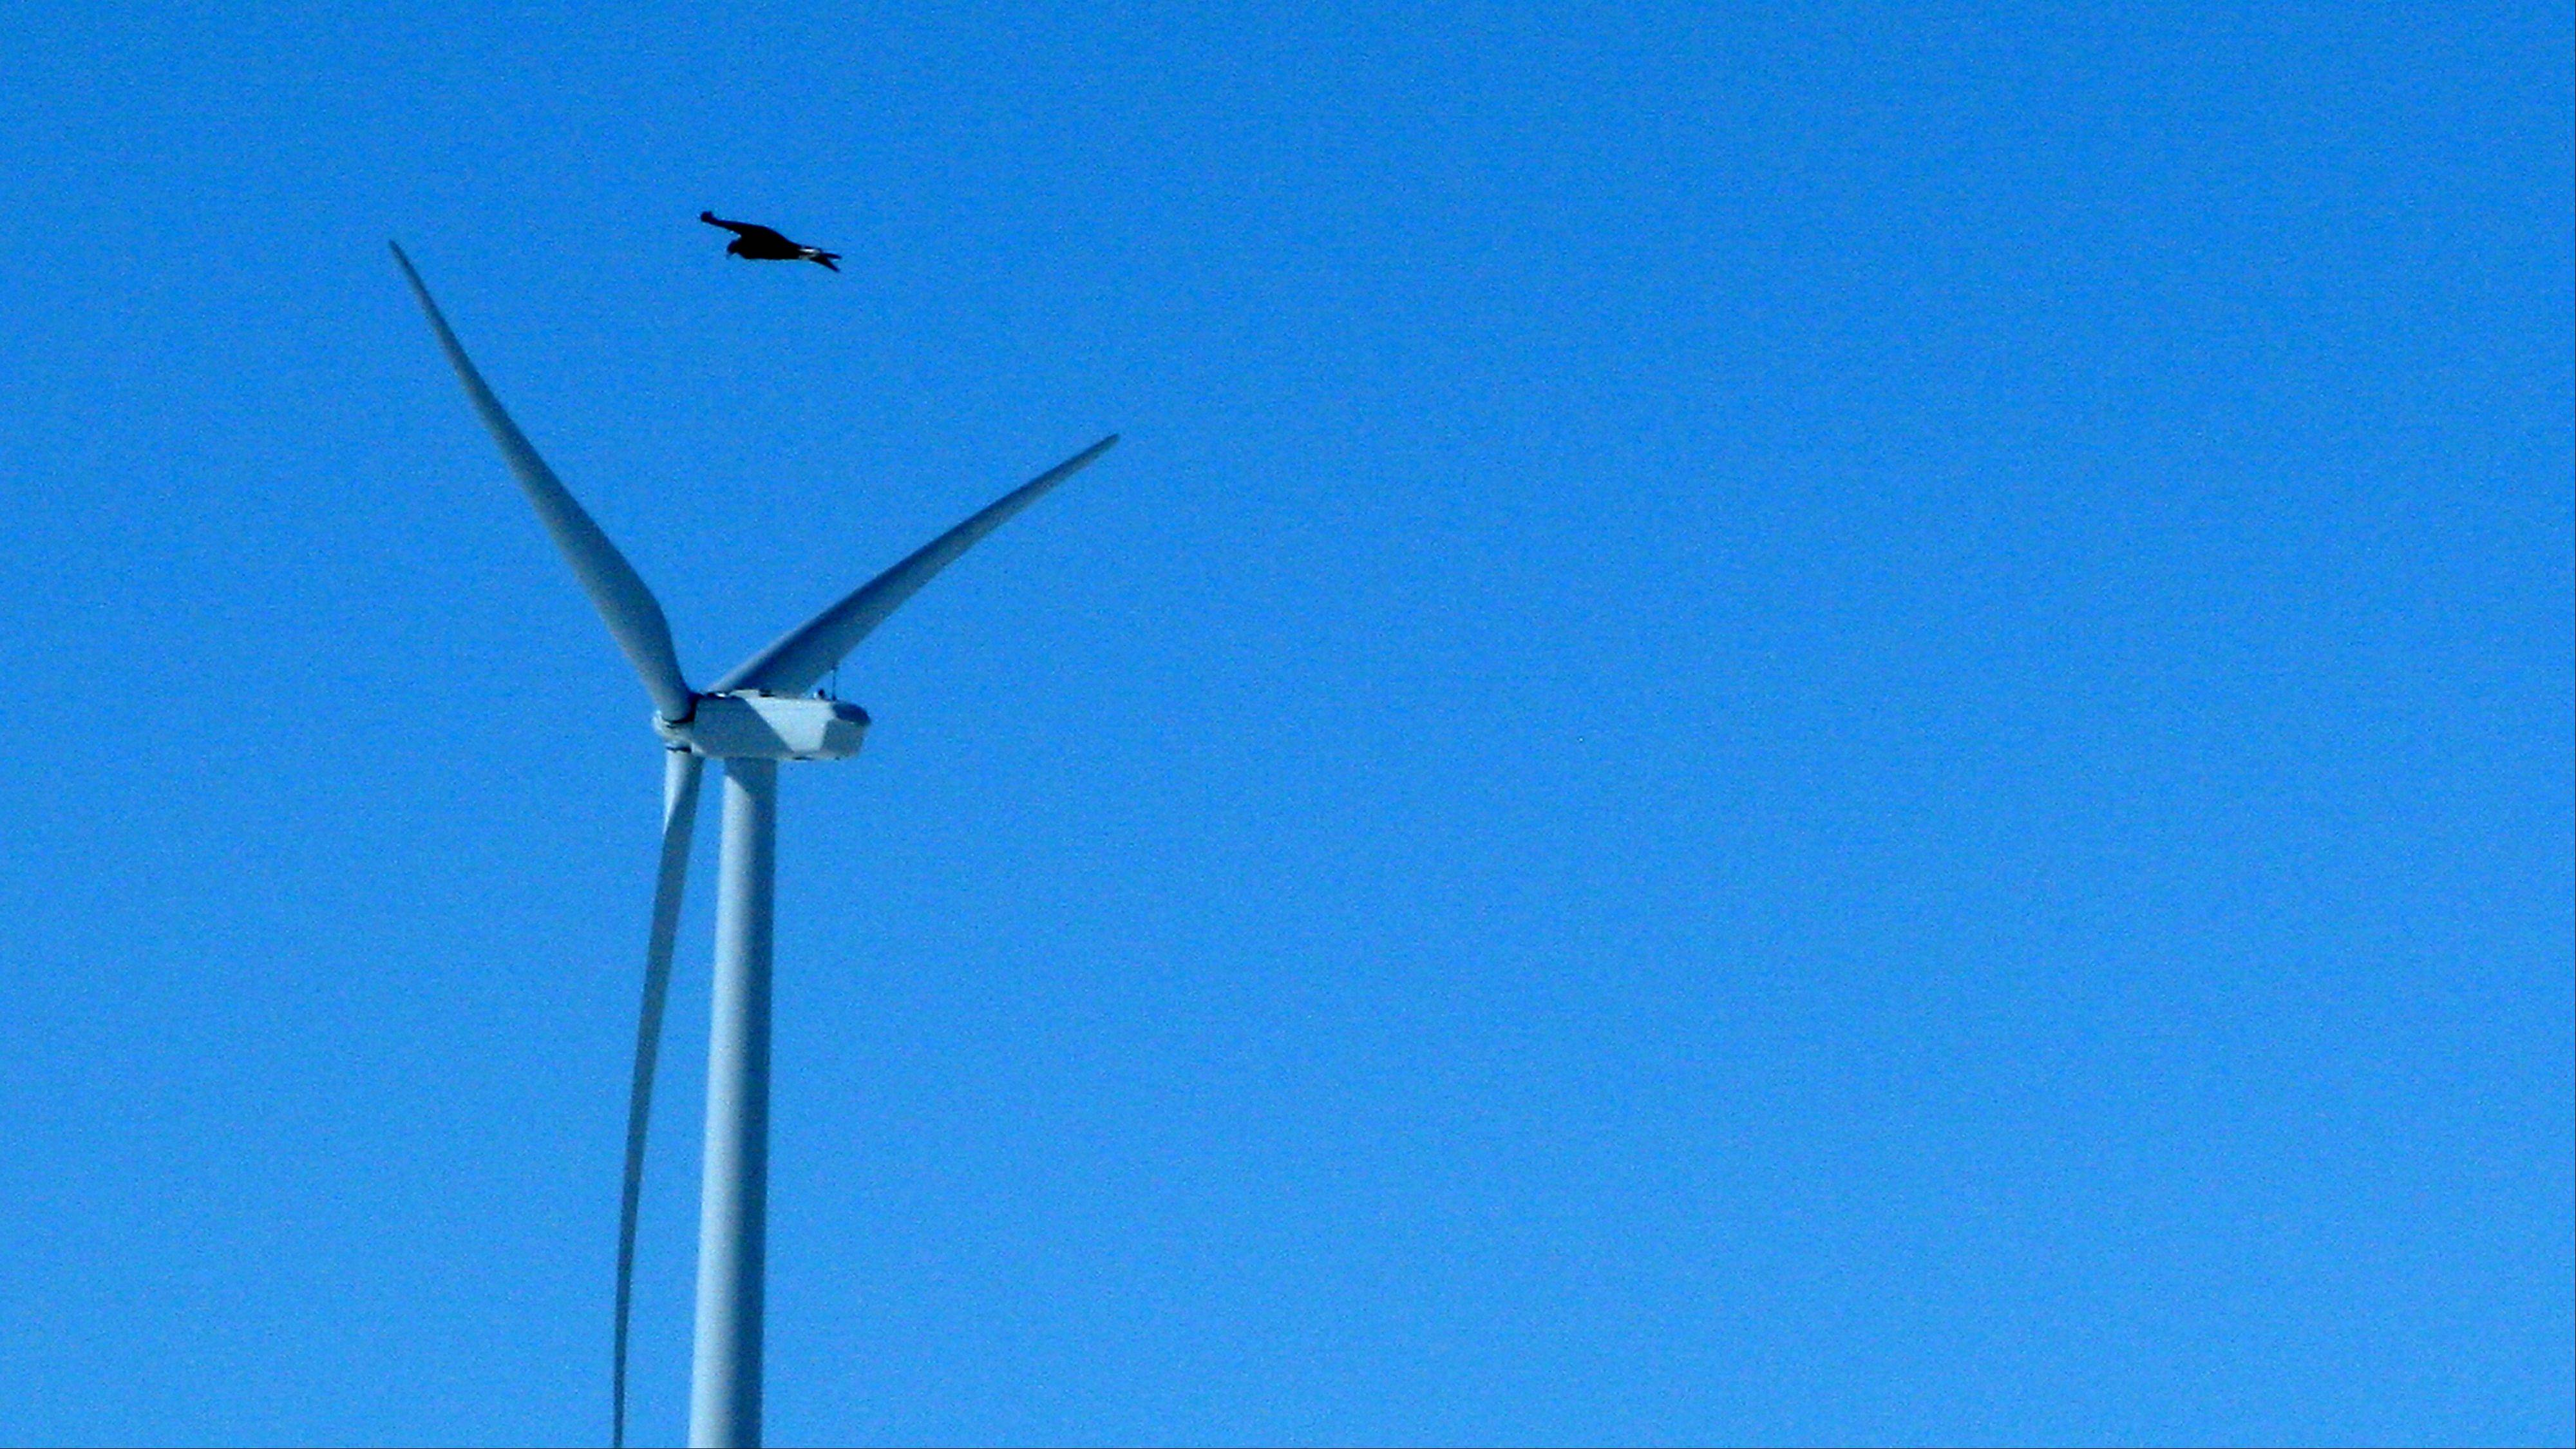 A golden eagle flies over a wind turbine in Wyoming. The Obama administration will allow companies to seek authorization to kill and harm bald and golden eagles for up to 30 years without penalty in an effort to balance some of the environmental trade-offs of green energy.